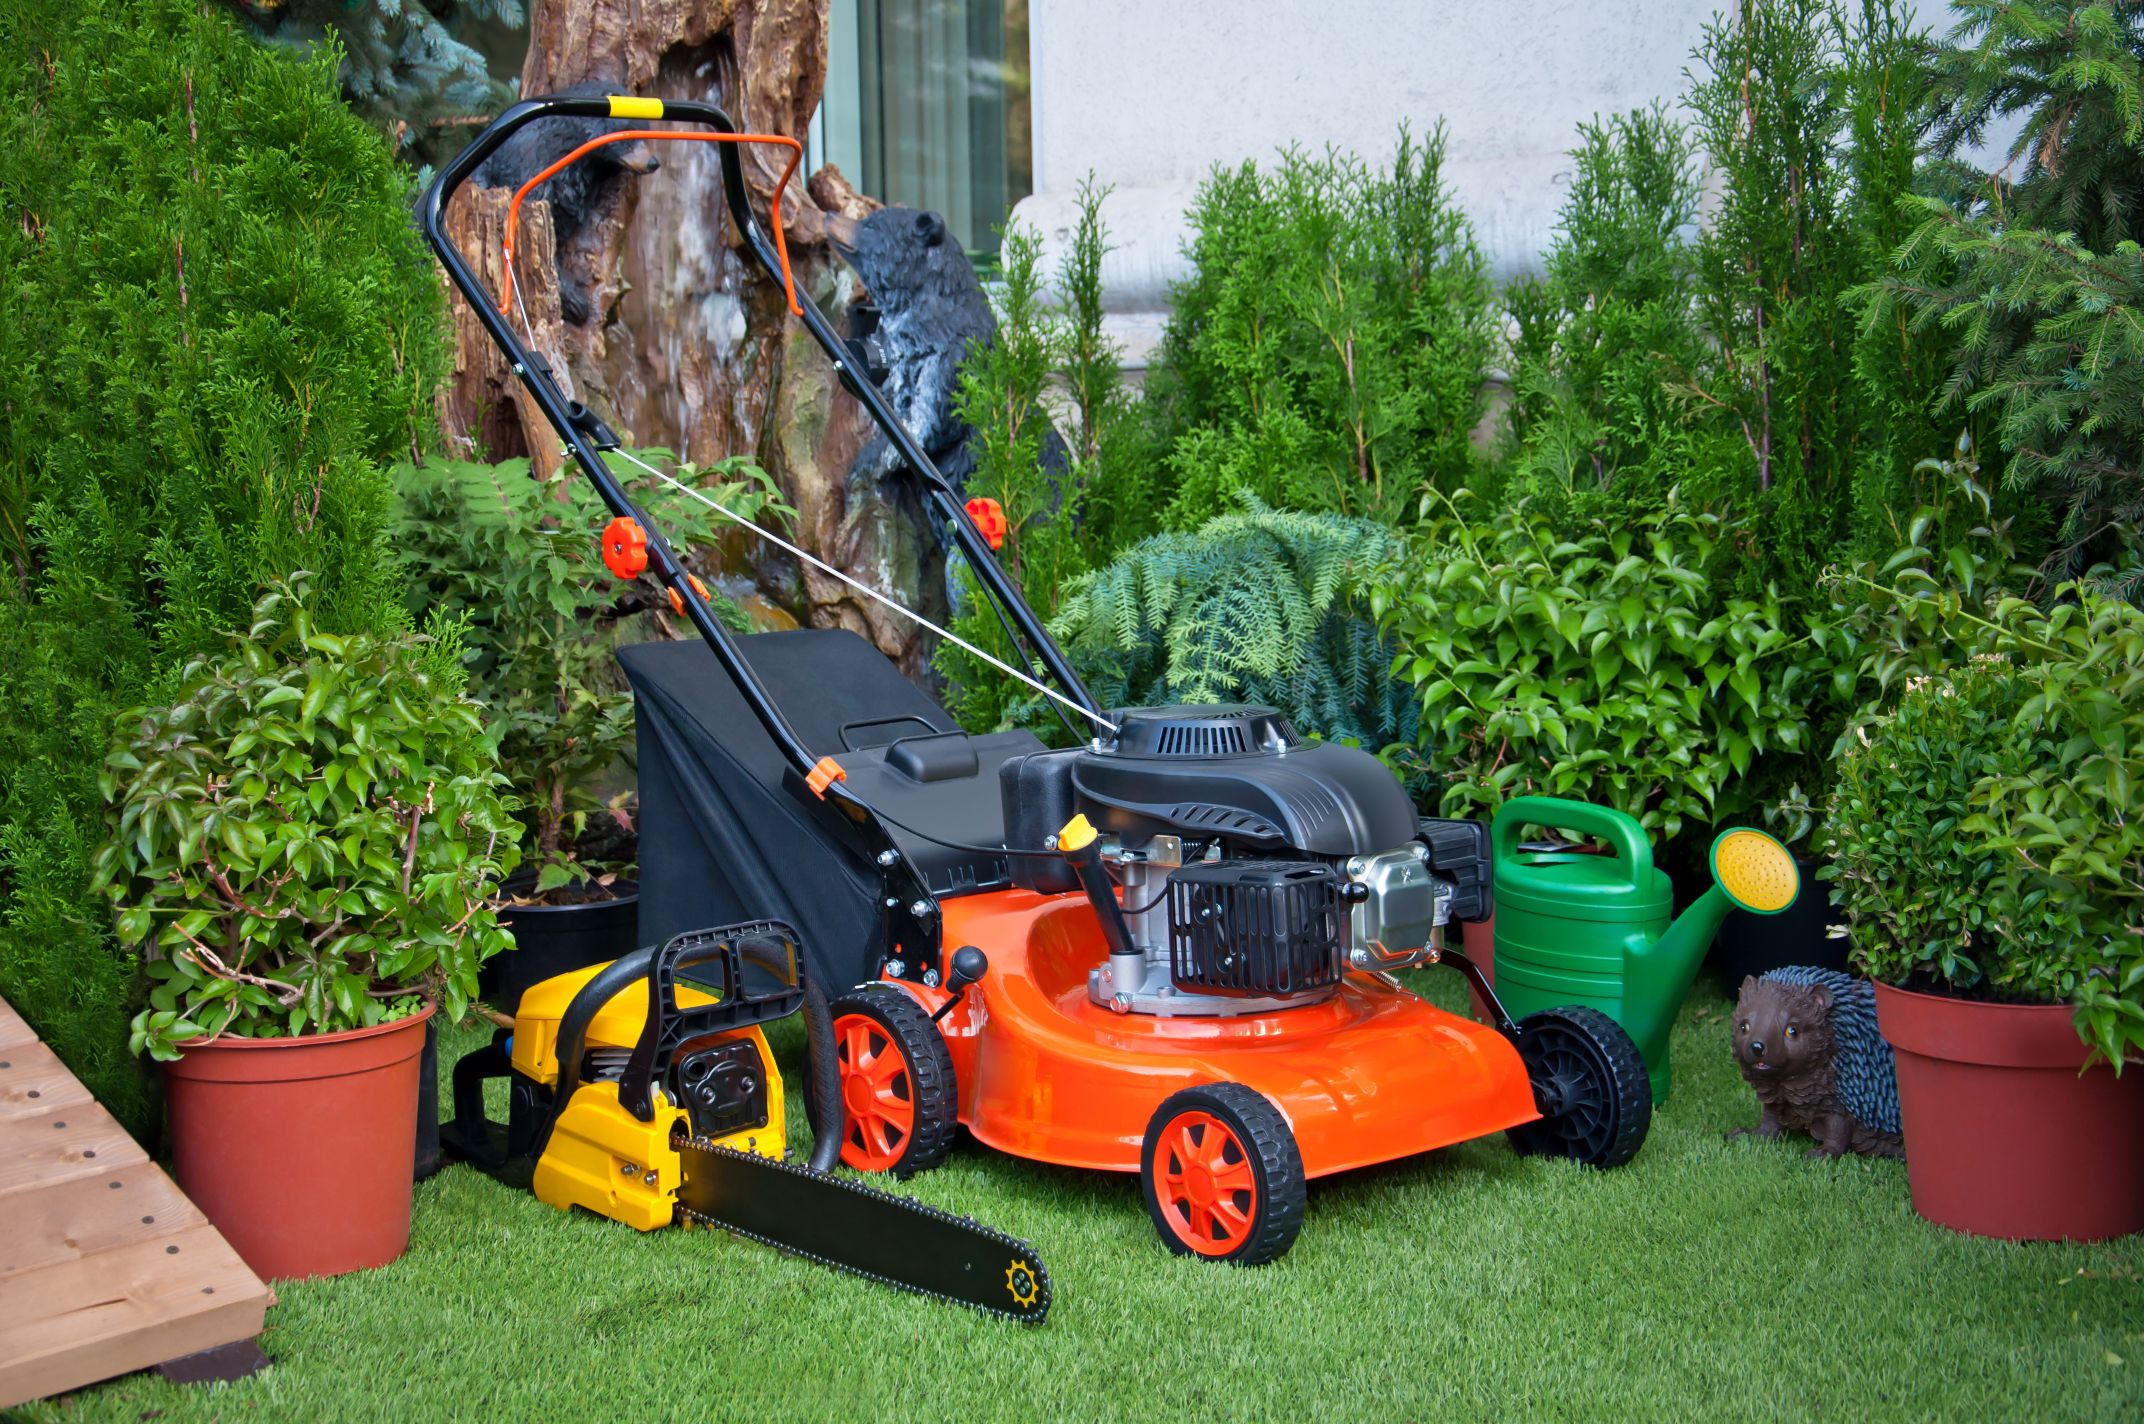 Lawn & Garden Equipment & Supplies